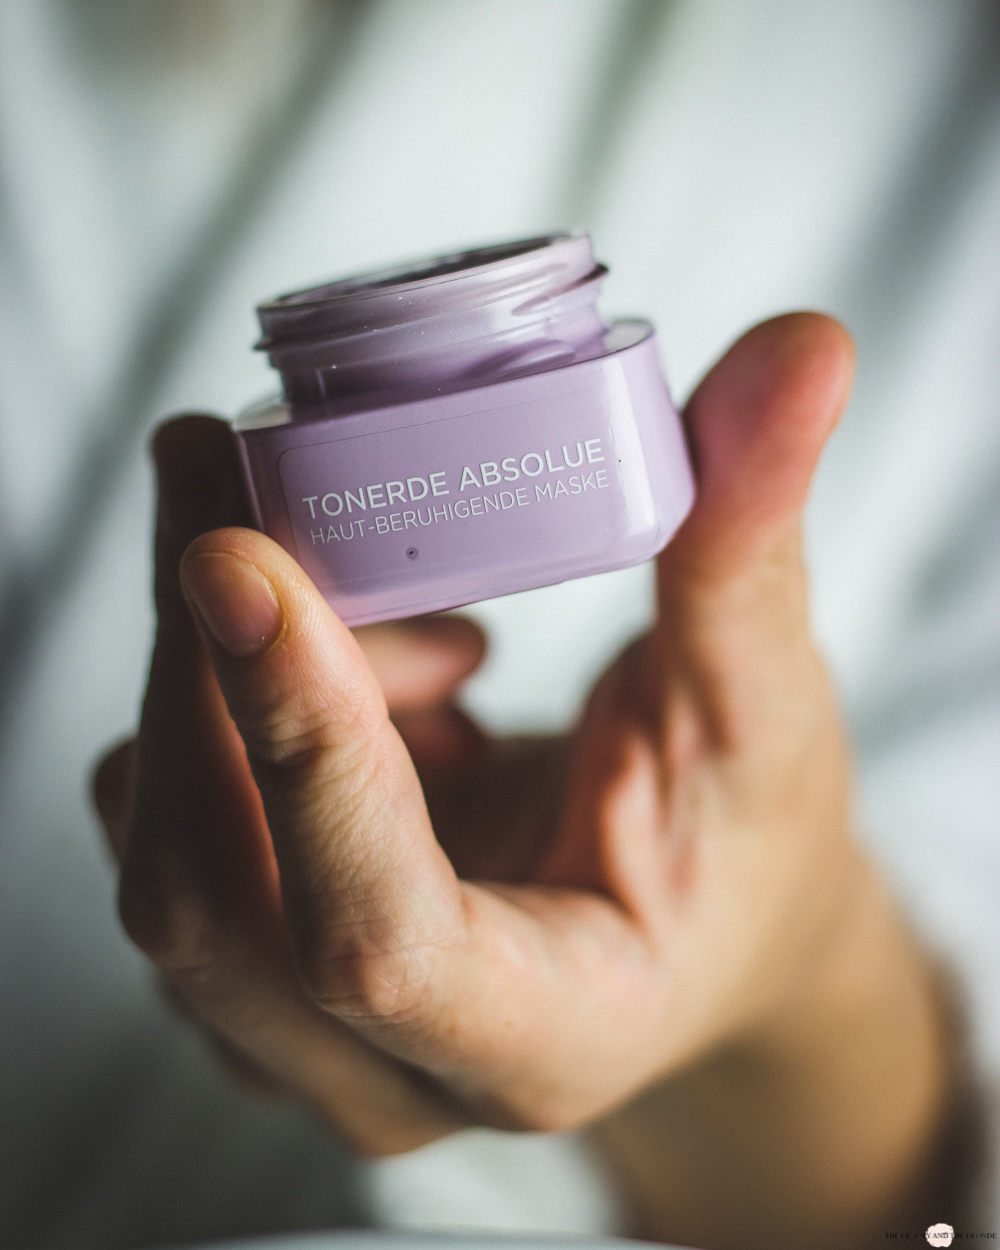 L'Oréal Tonerde Absolue Hautberuhigende Maske Review